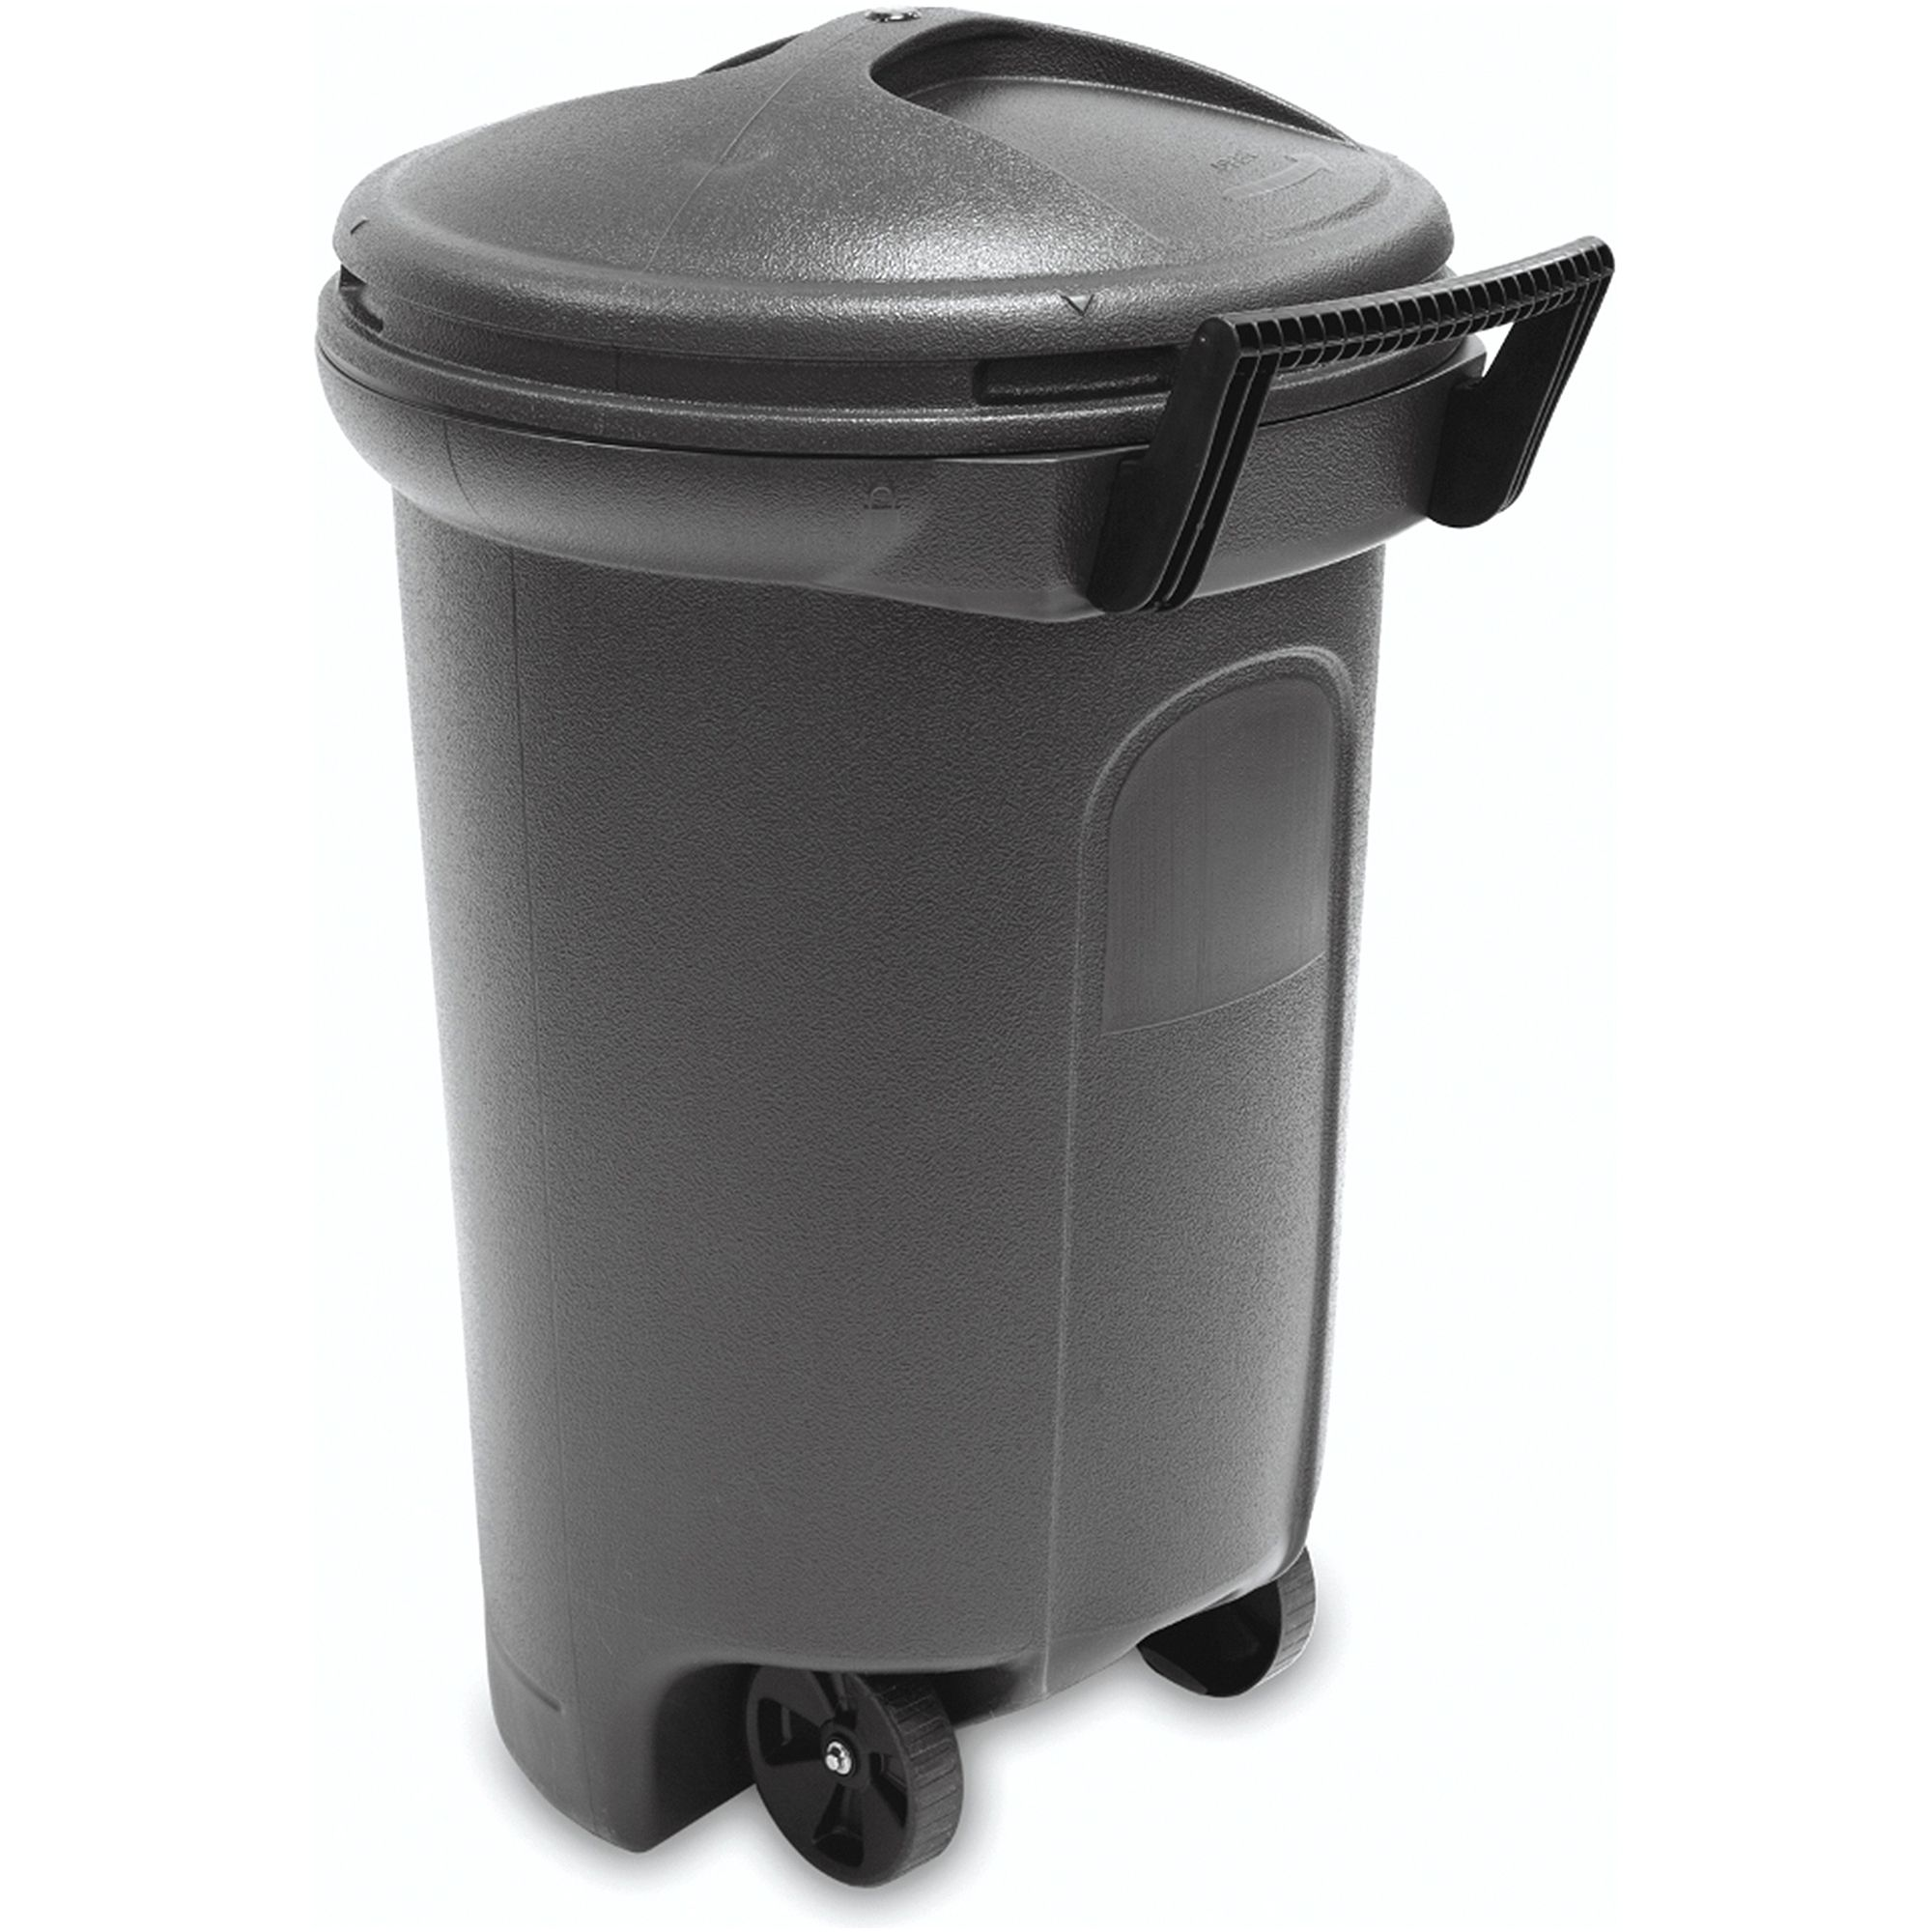 Walmart Outdoor Trash Cans Outside Trash Cans With Wheels  Useful Itemsneeds  Pinterest  Wheels